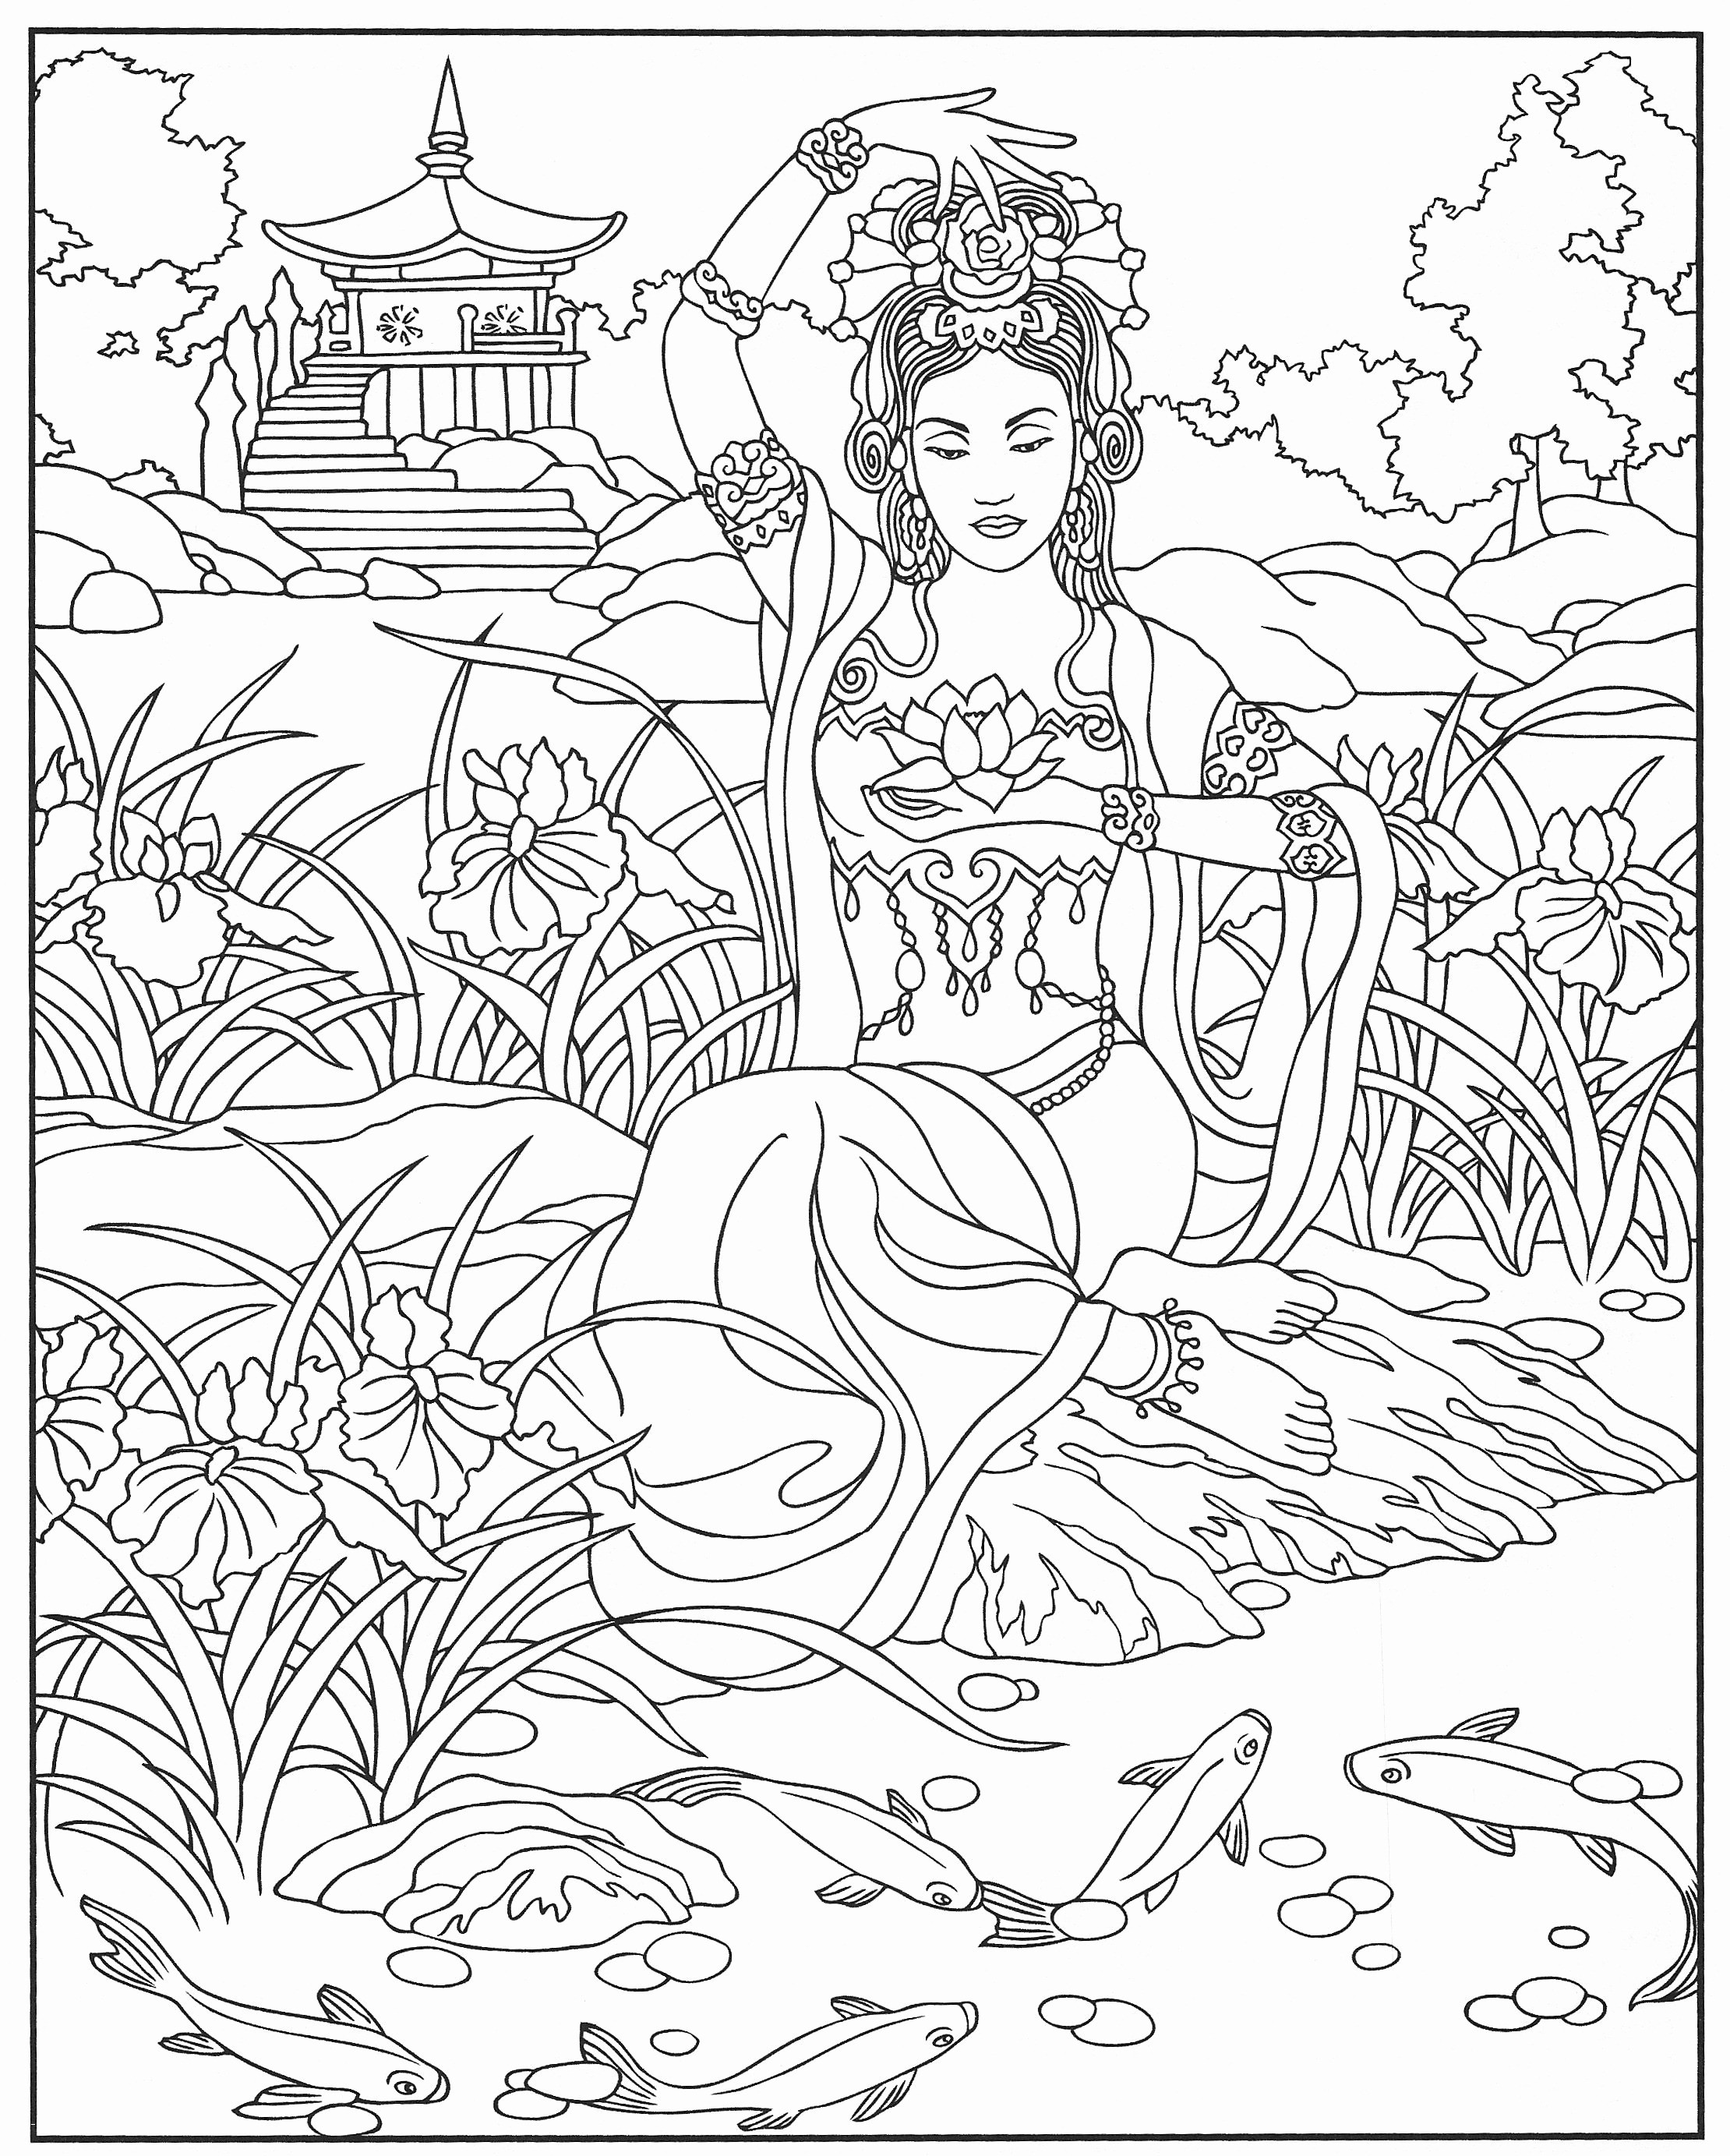 Complex Coloring Pages For Teens And Adults Best Coloring Pages For Kids